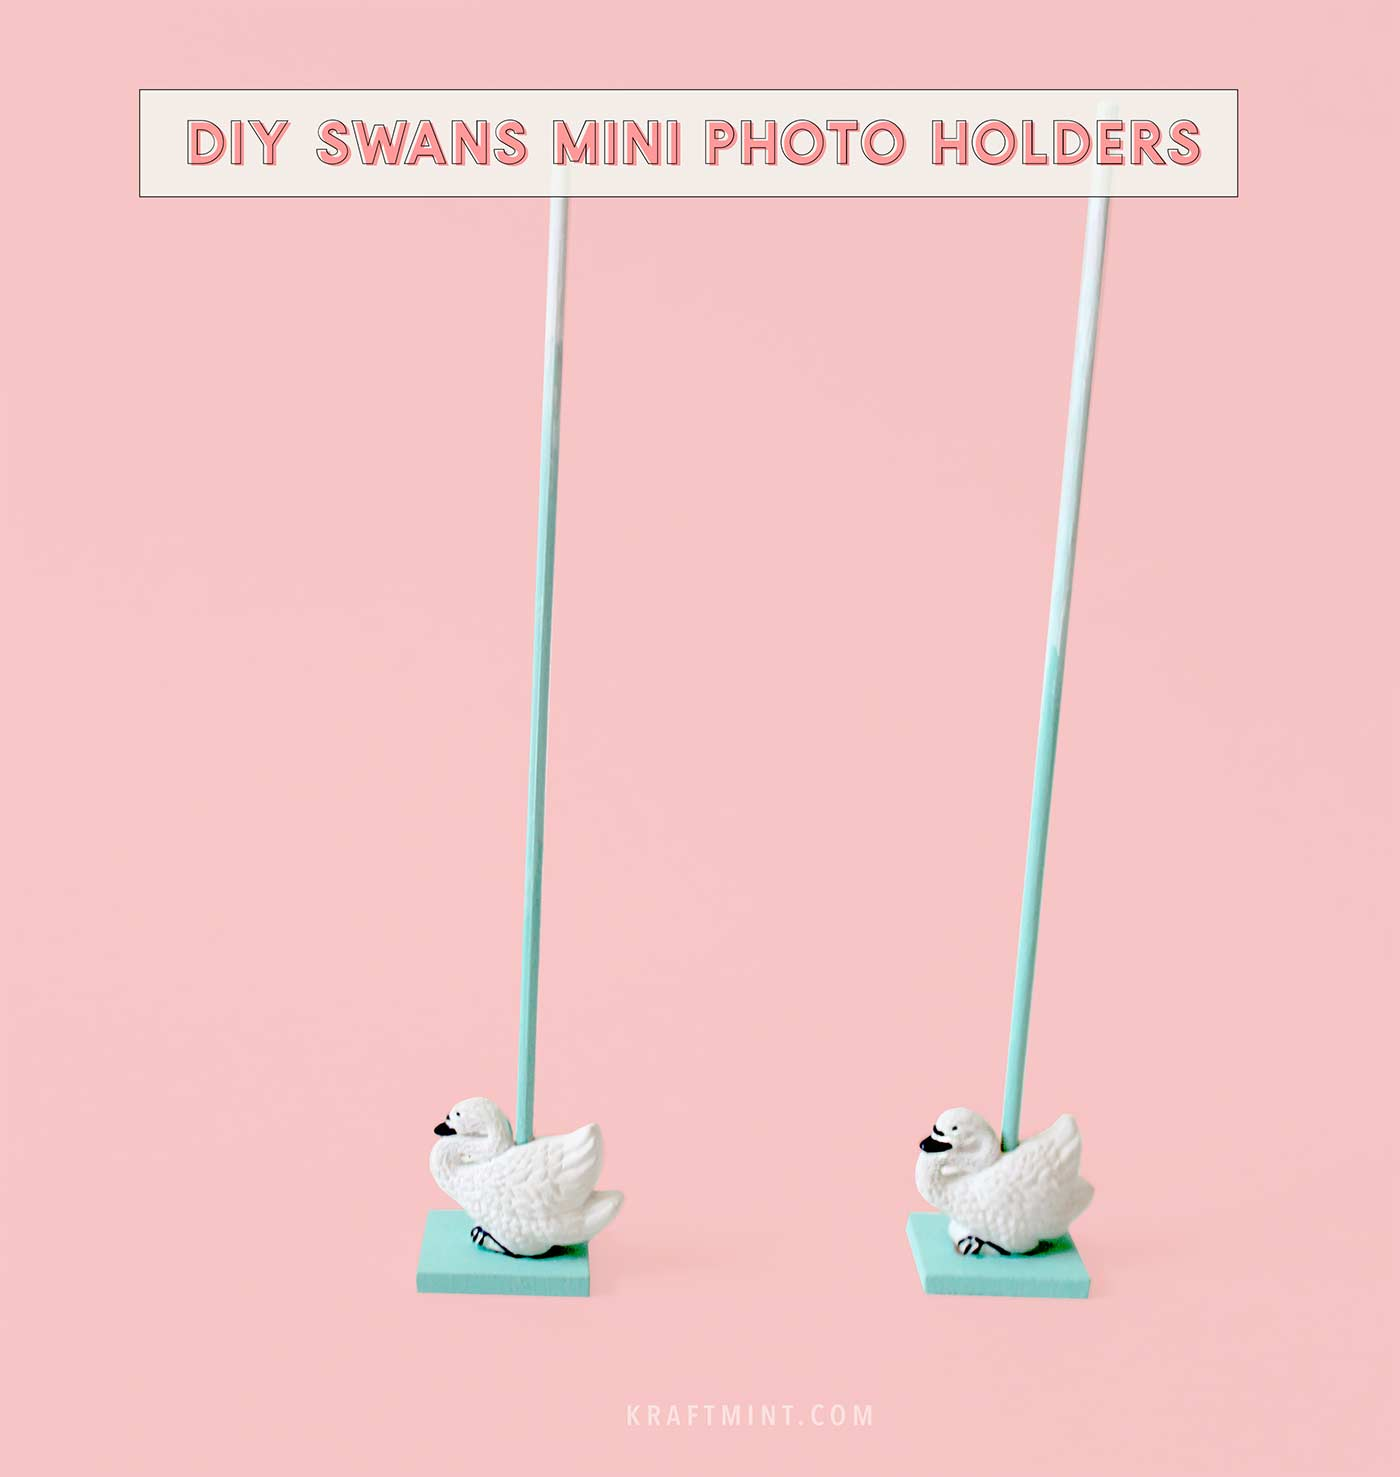 DIY Swans mini photo holders - kraft&mint blog